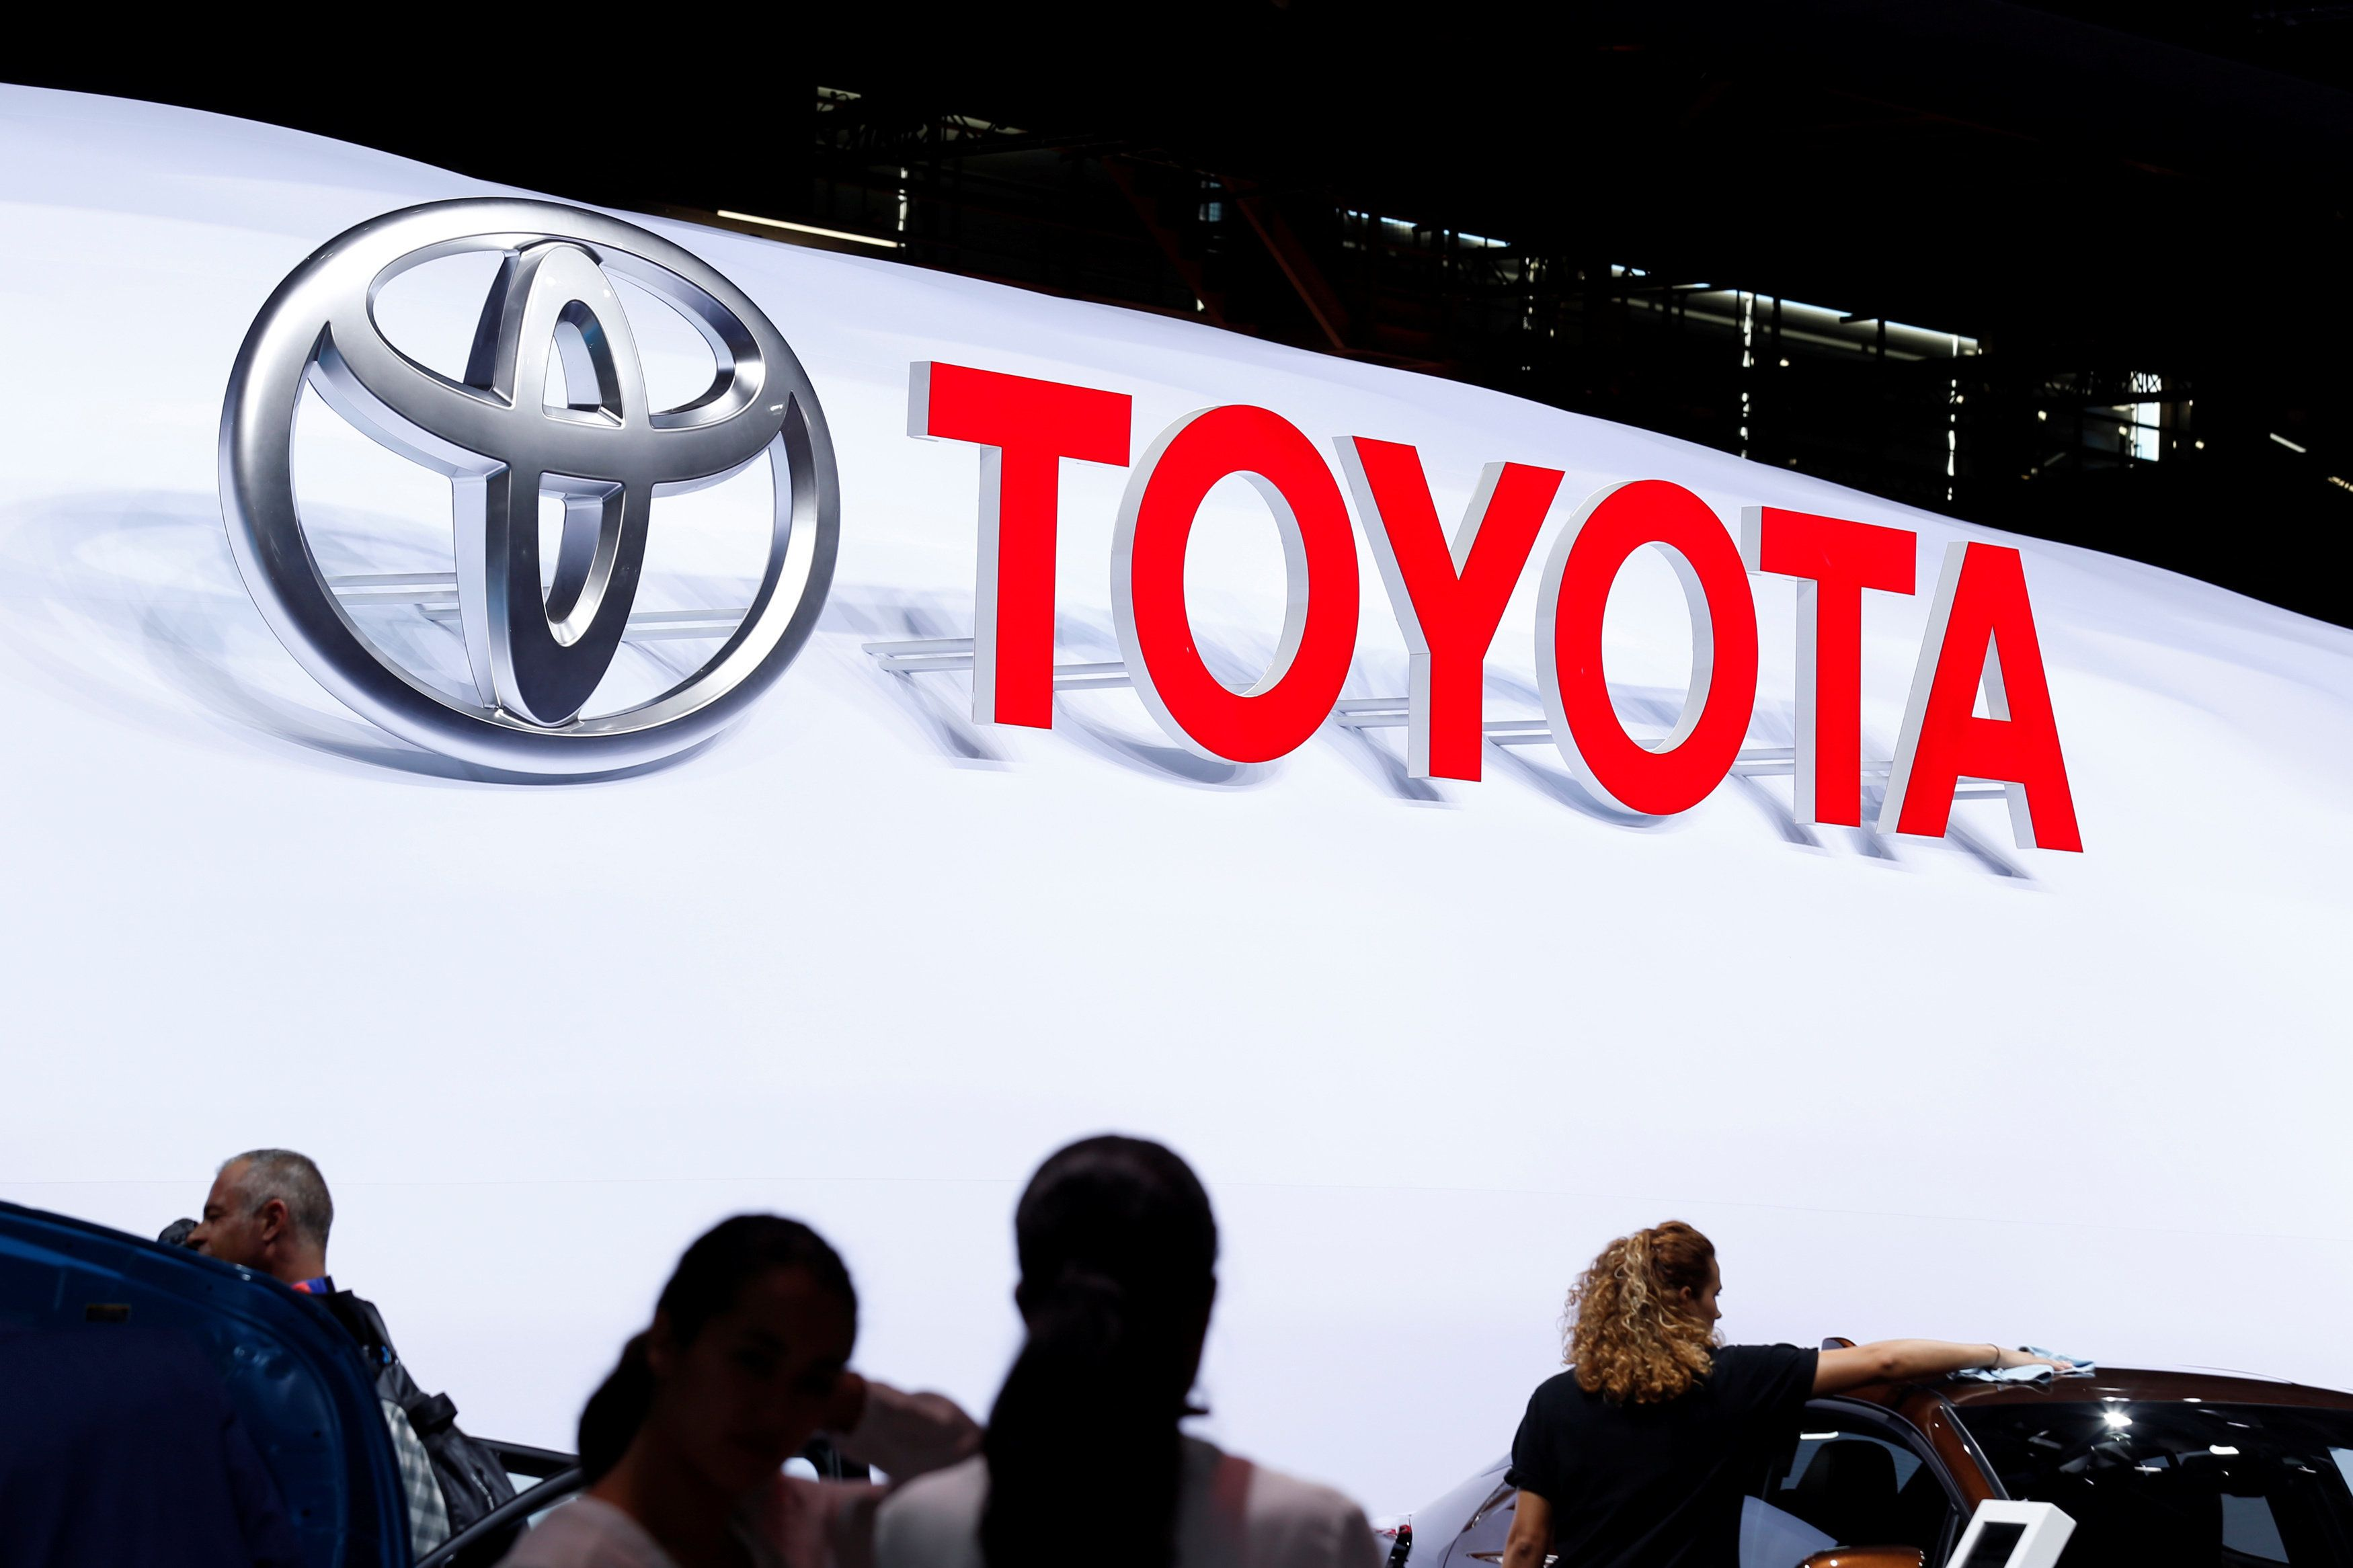 Volkswagen has surpassed Toyota as the world's top-selling